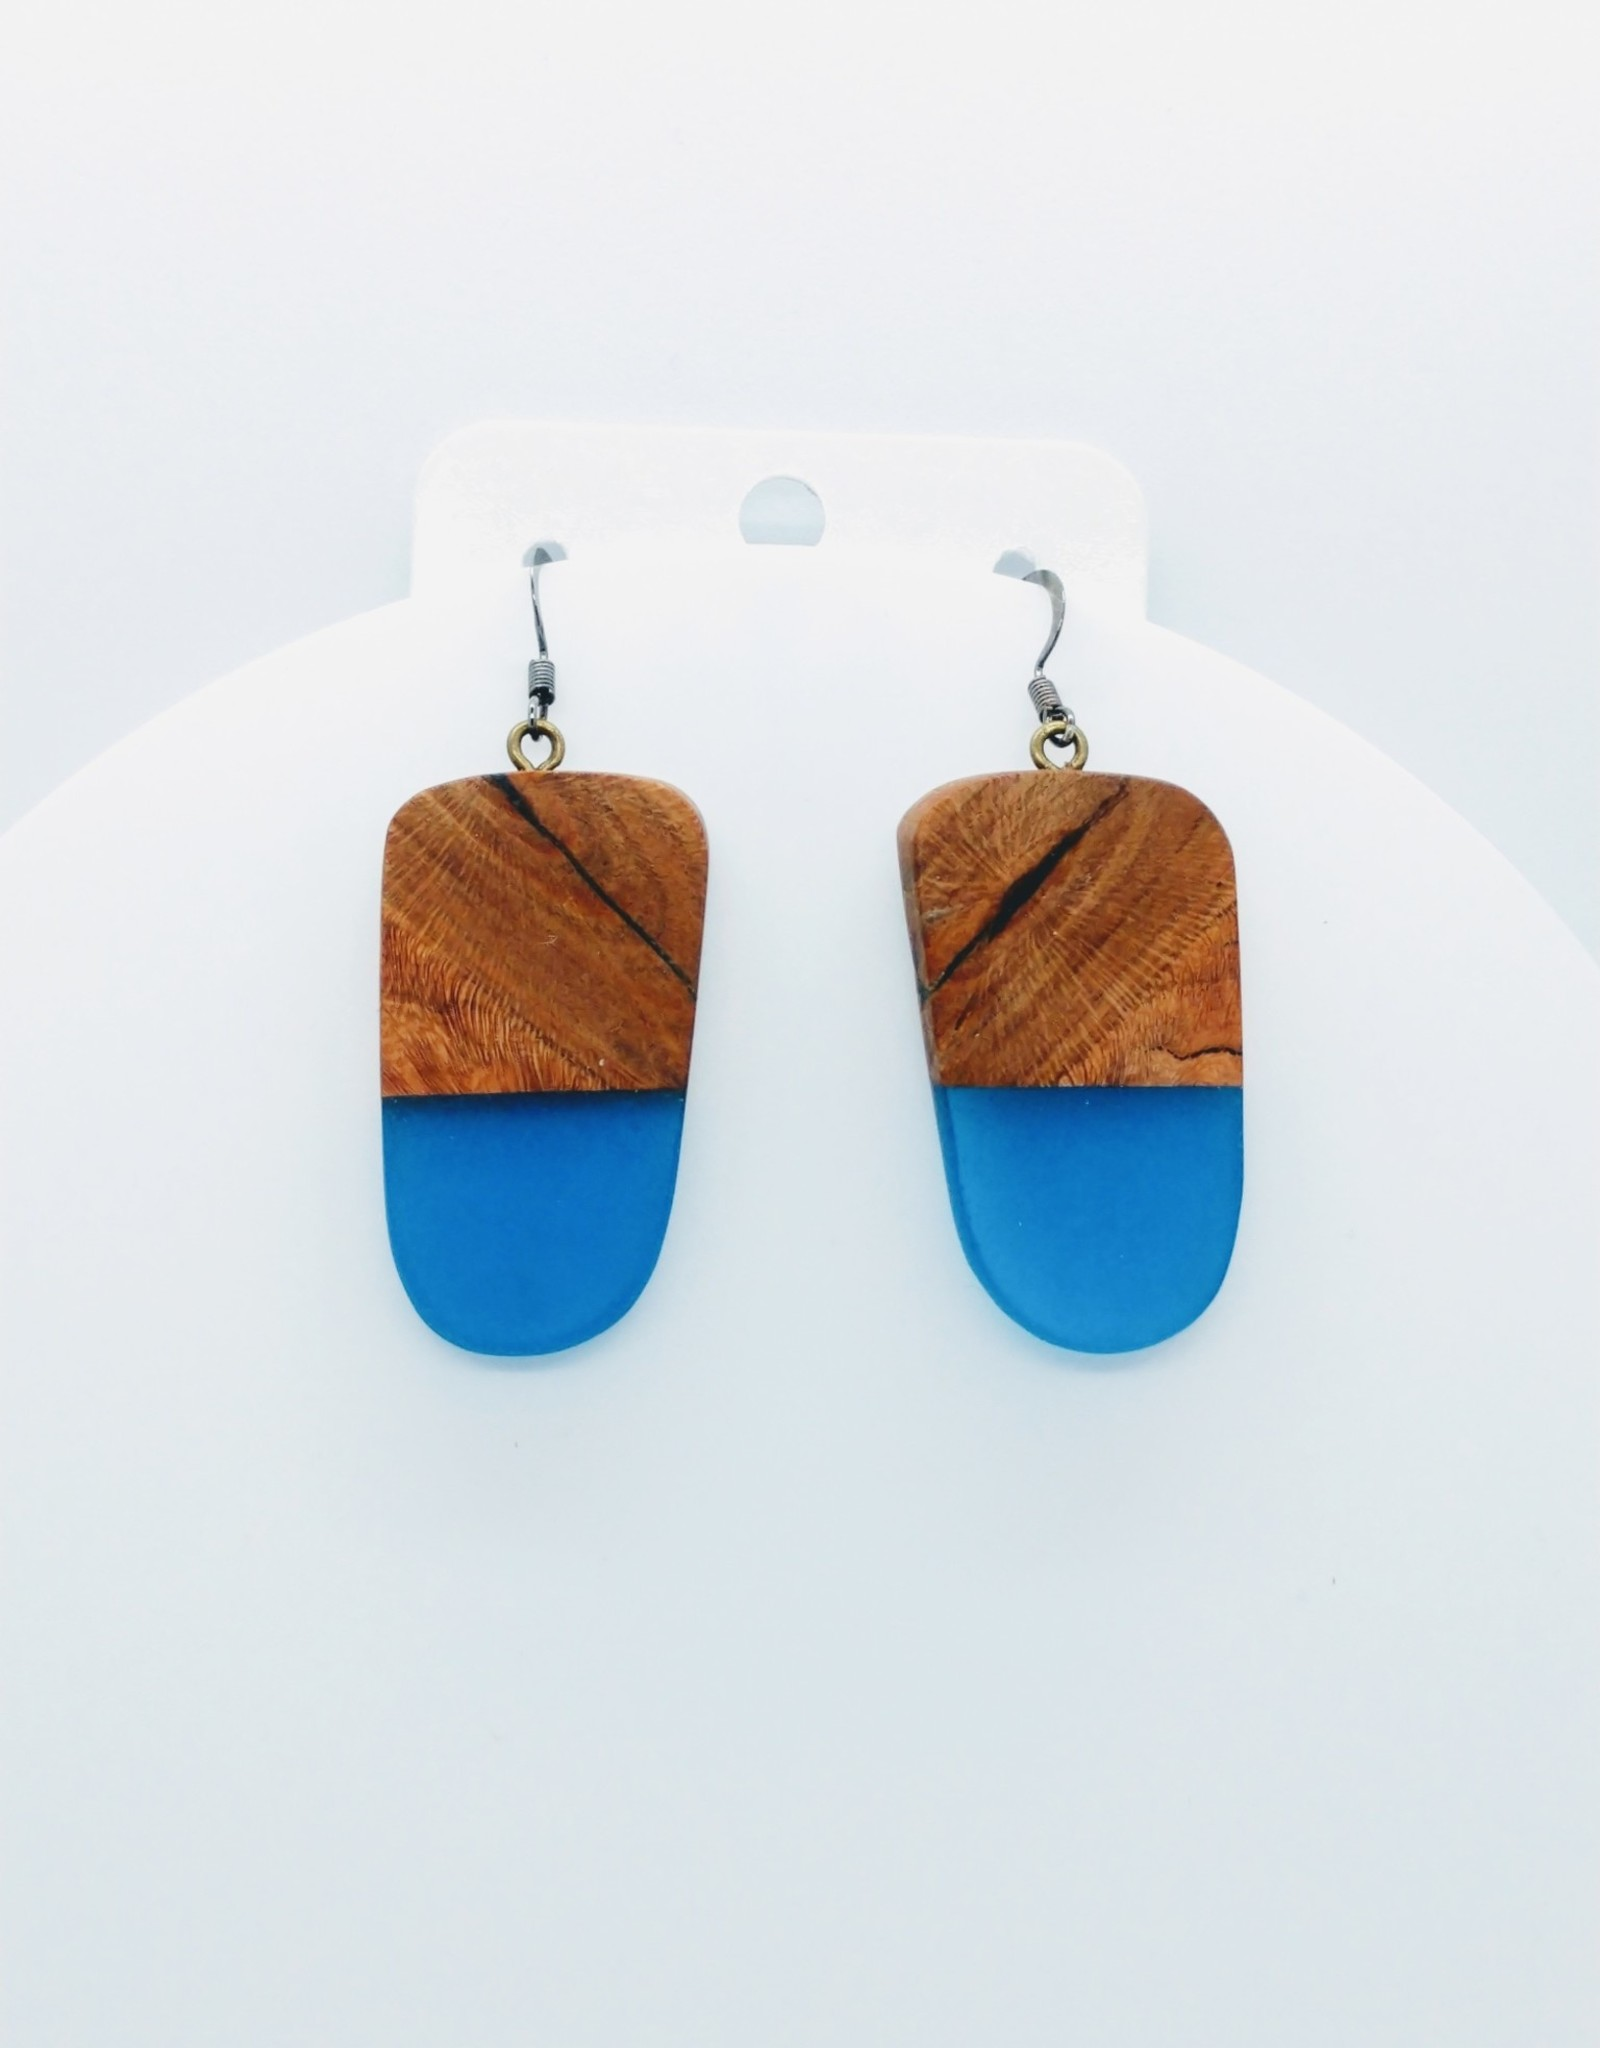 Resin River Designs Resin River Designs - Wood with Resin and Epoxy Earring w/Steel - ID108